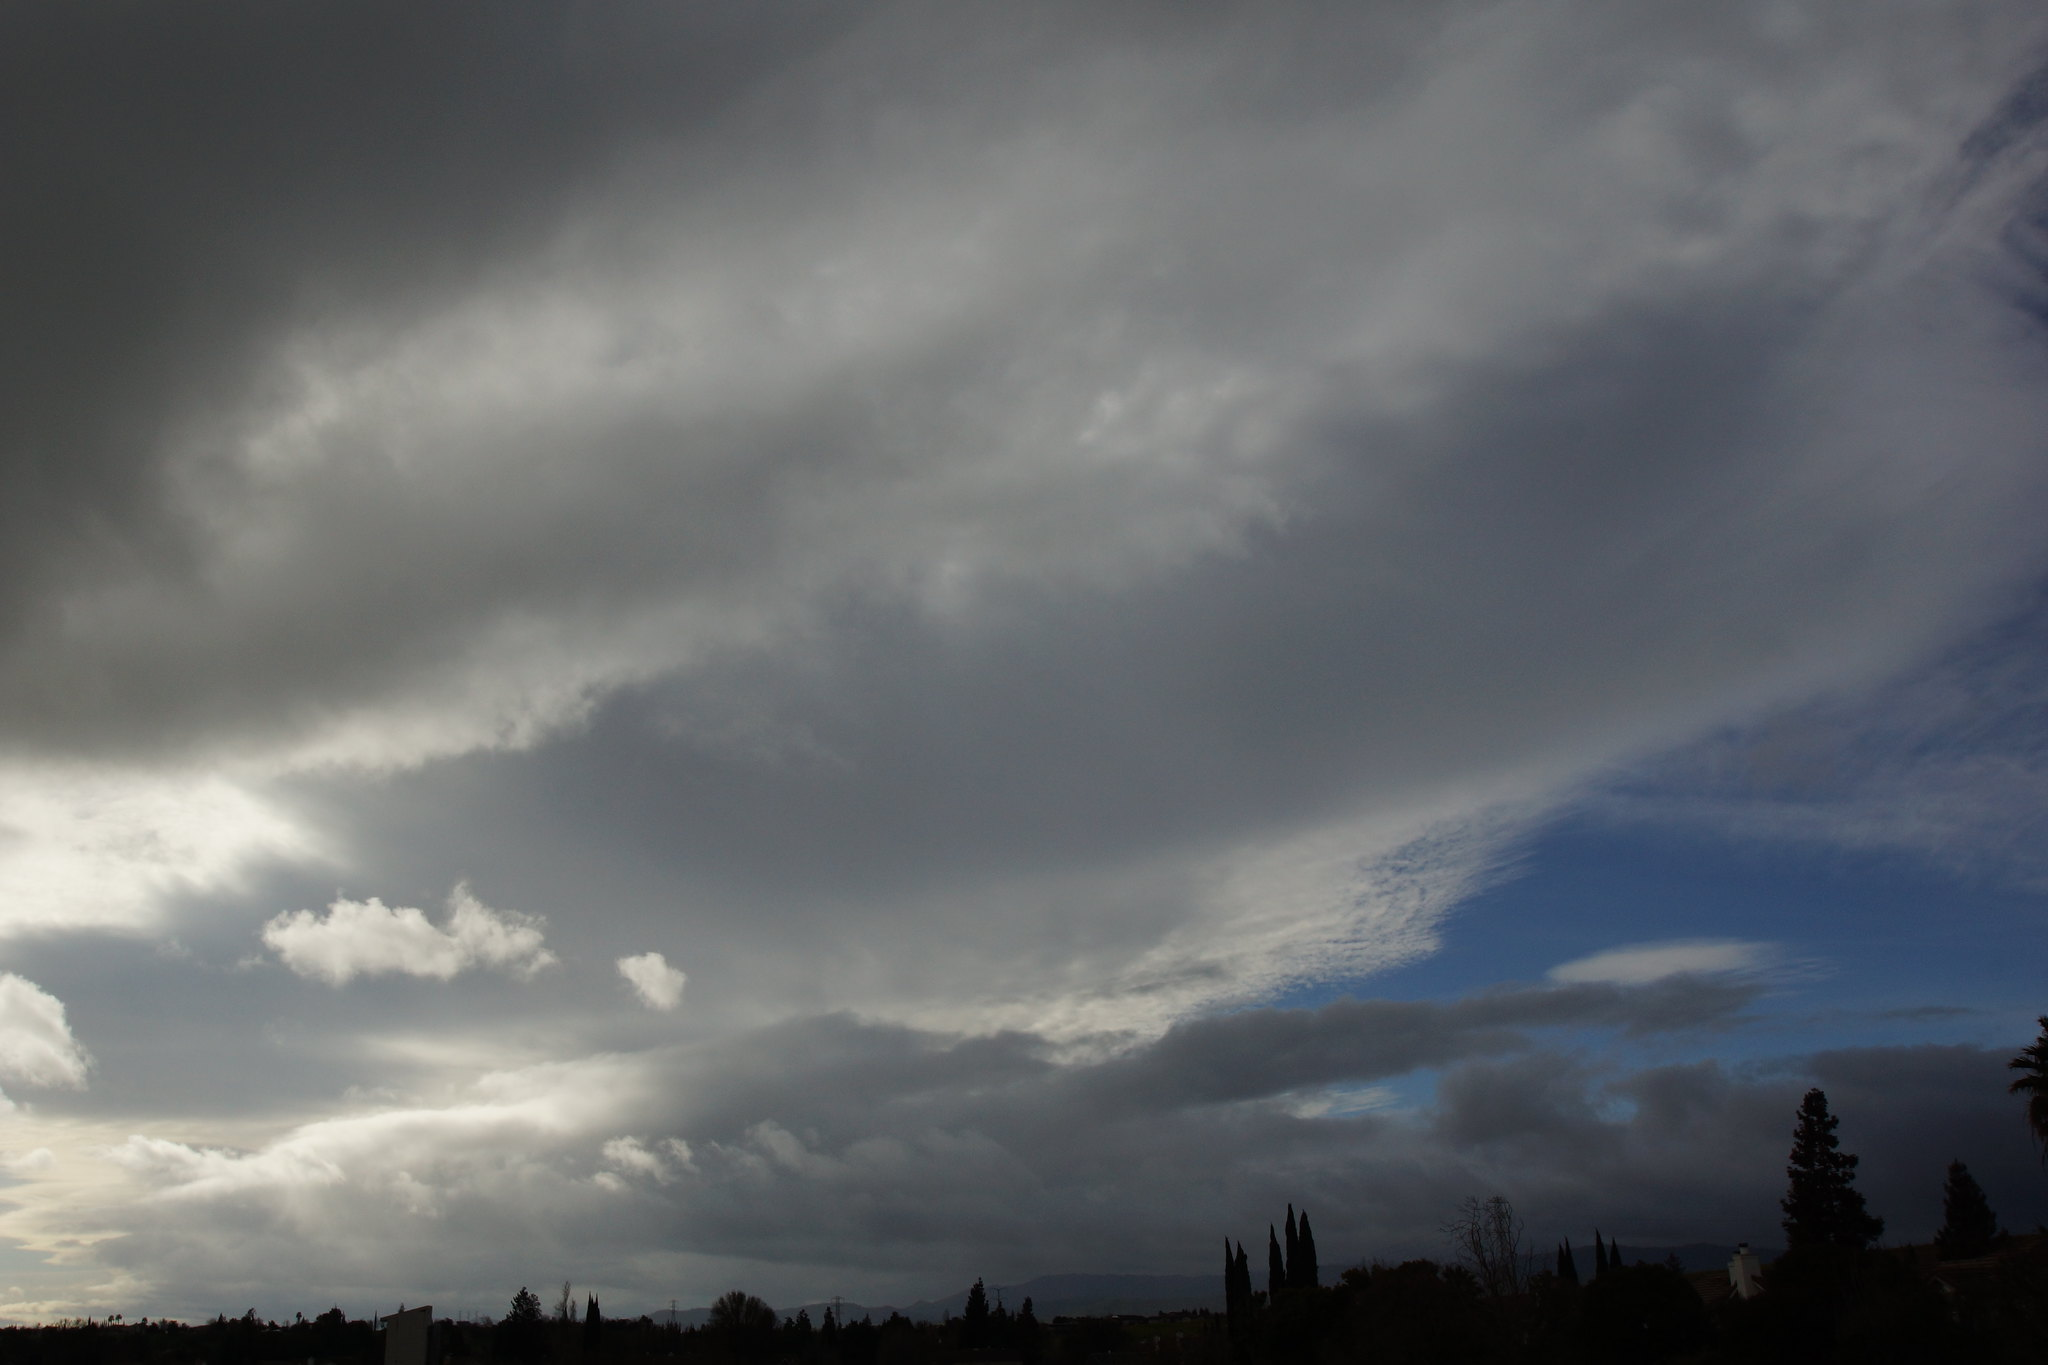 2017-02-04 Nothing but Clouds - Week 5 [#5]